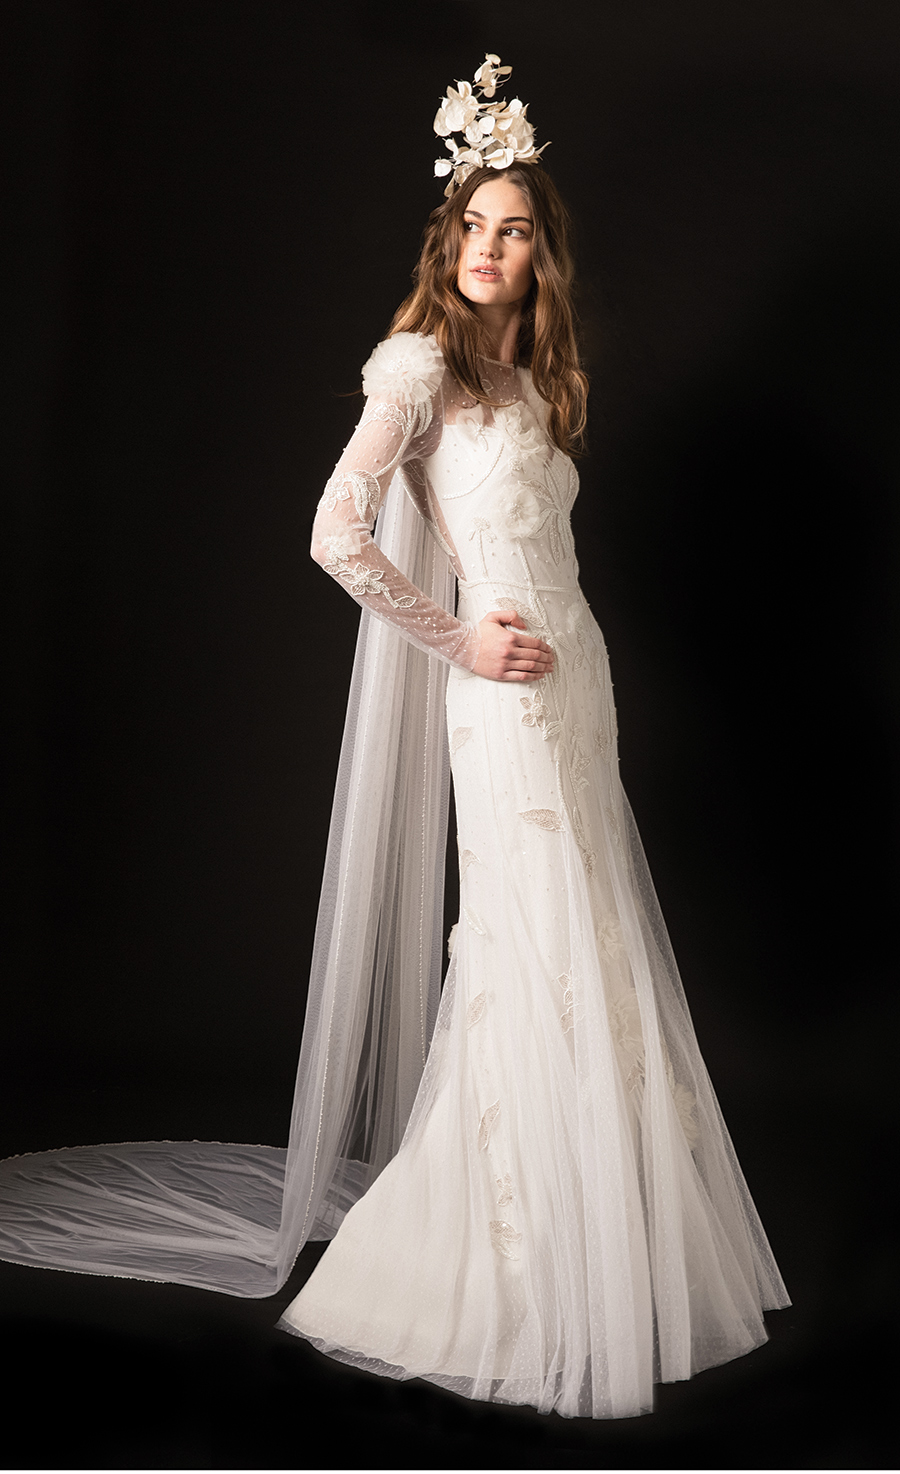 temperley bridal summer 2020 mirabelle dress, temperley wedding planner, temperley london wedding dress, temperley bridal